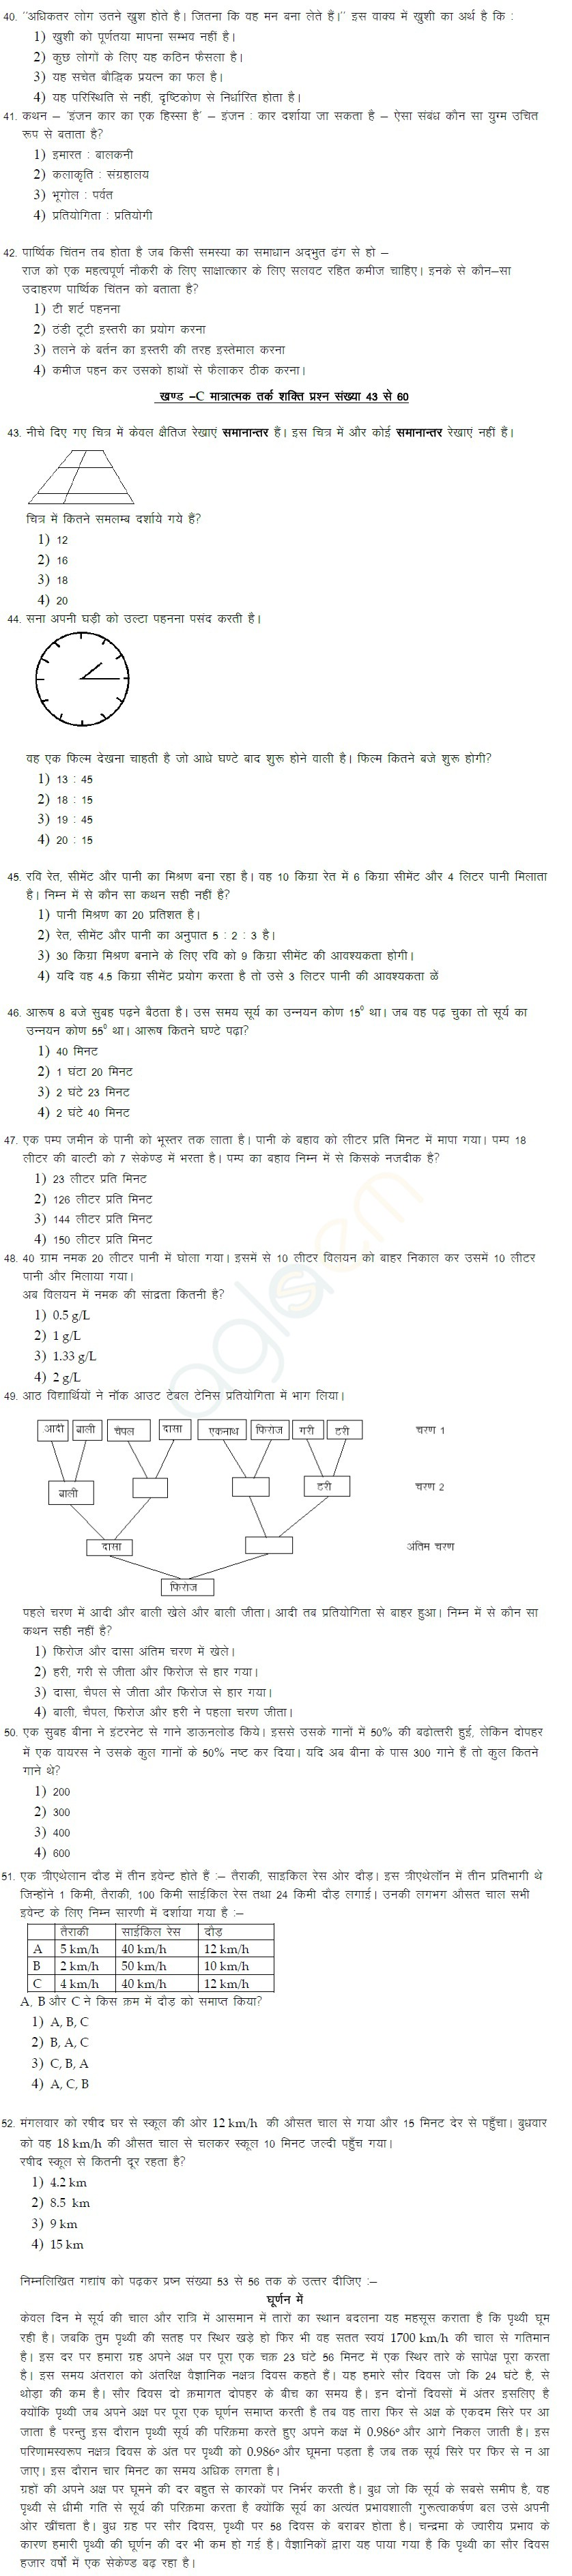 nda 2014 question paper with solution pdf